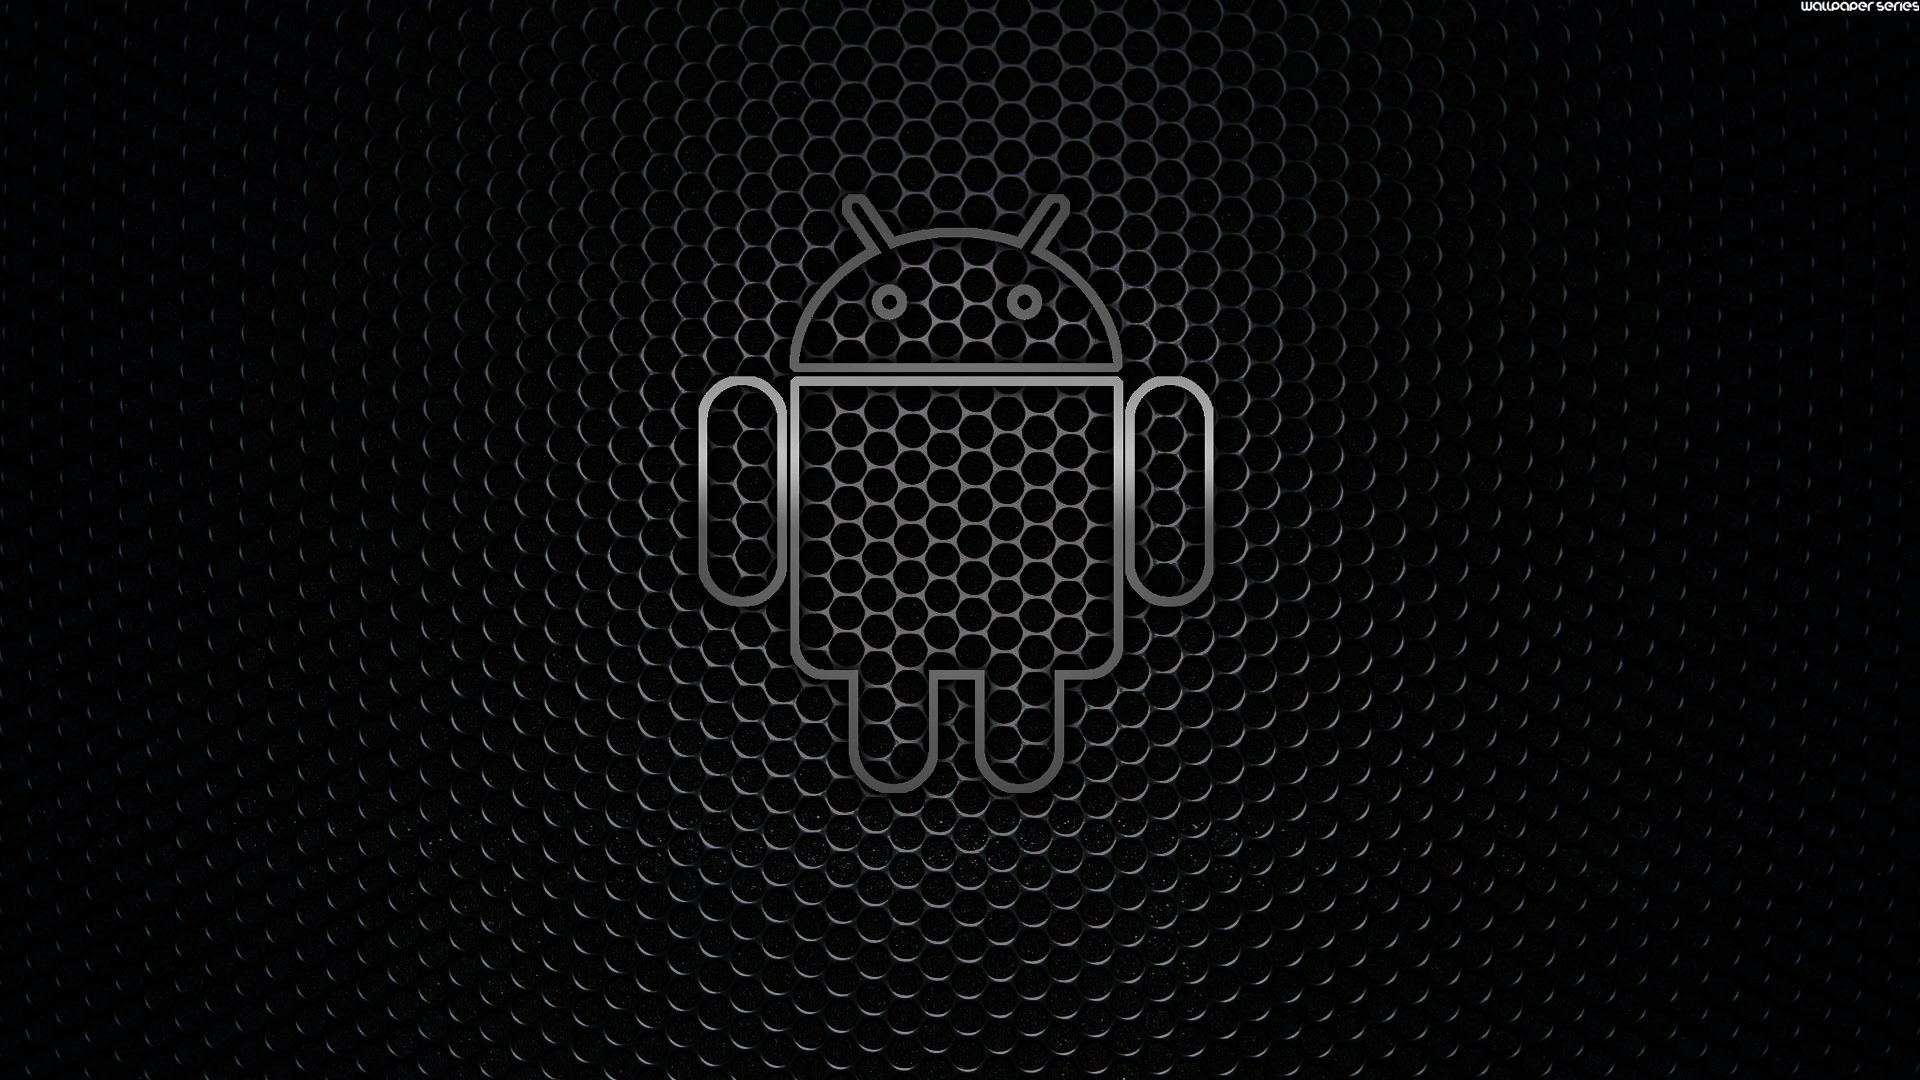 Logo android negro full hd en fondos 1080 for Sfondo nero hd